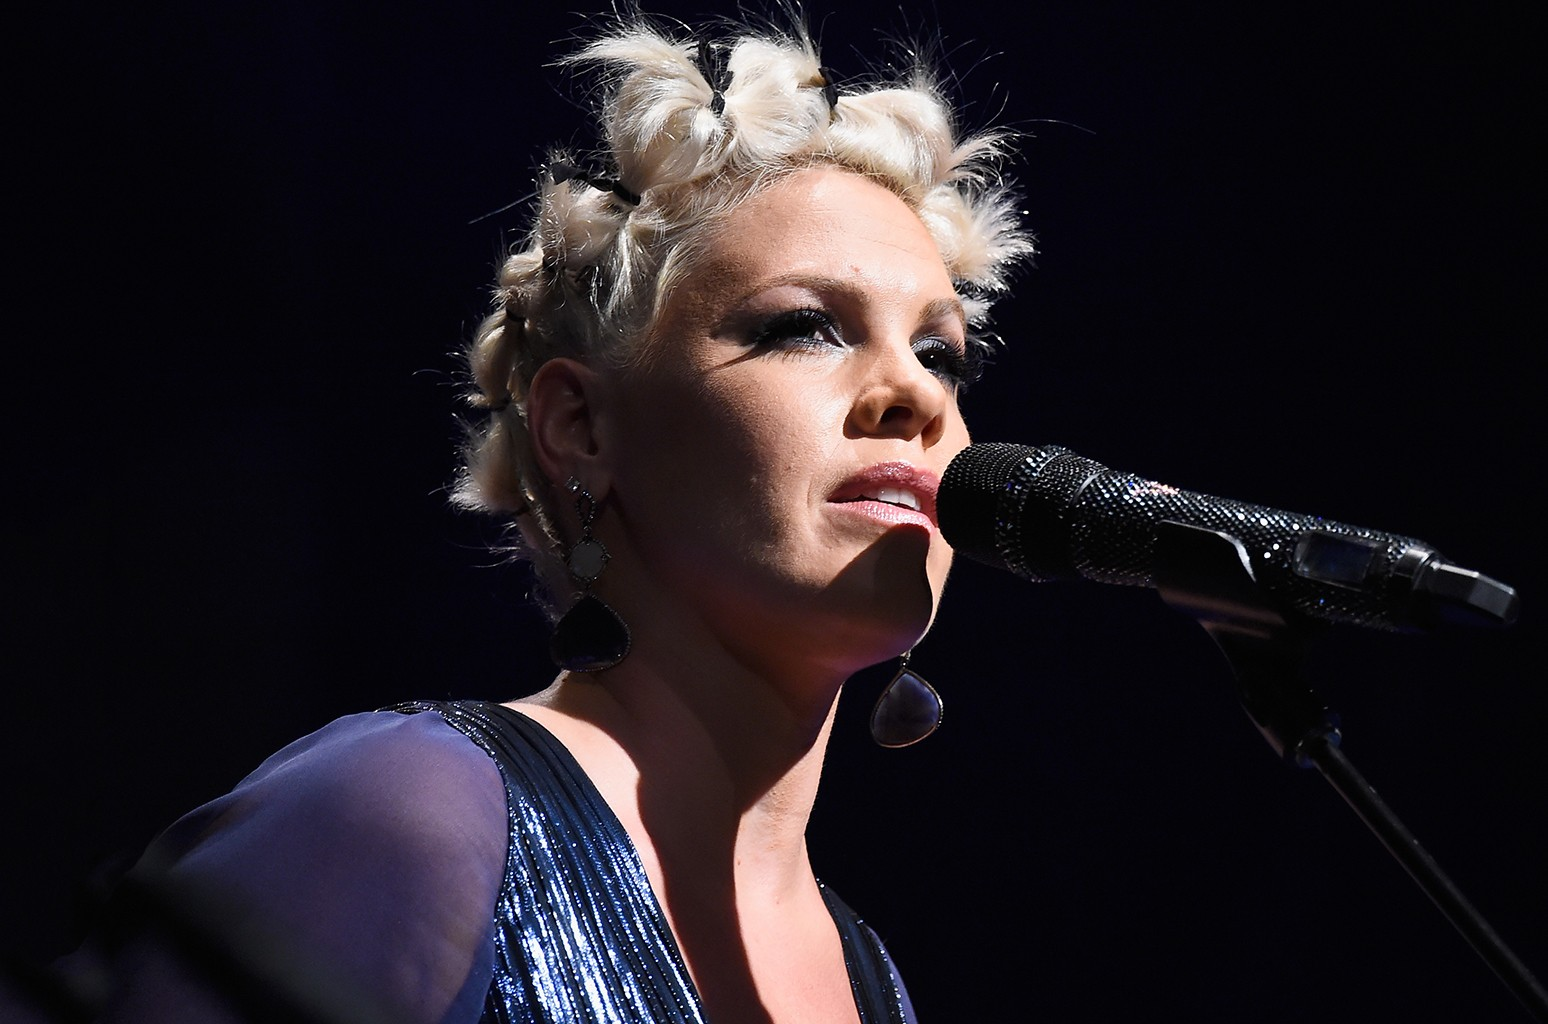 Pink performs at House of Blues Sunset Strip on Oct. 23, 2014 in West Hollywood, Calif.